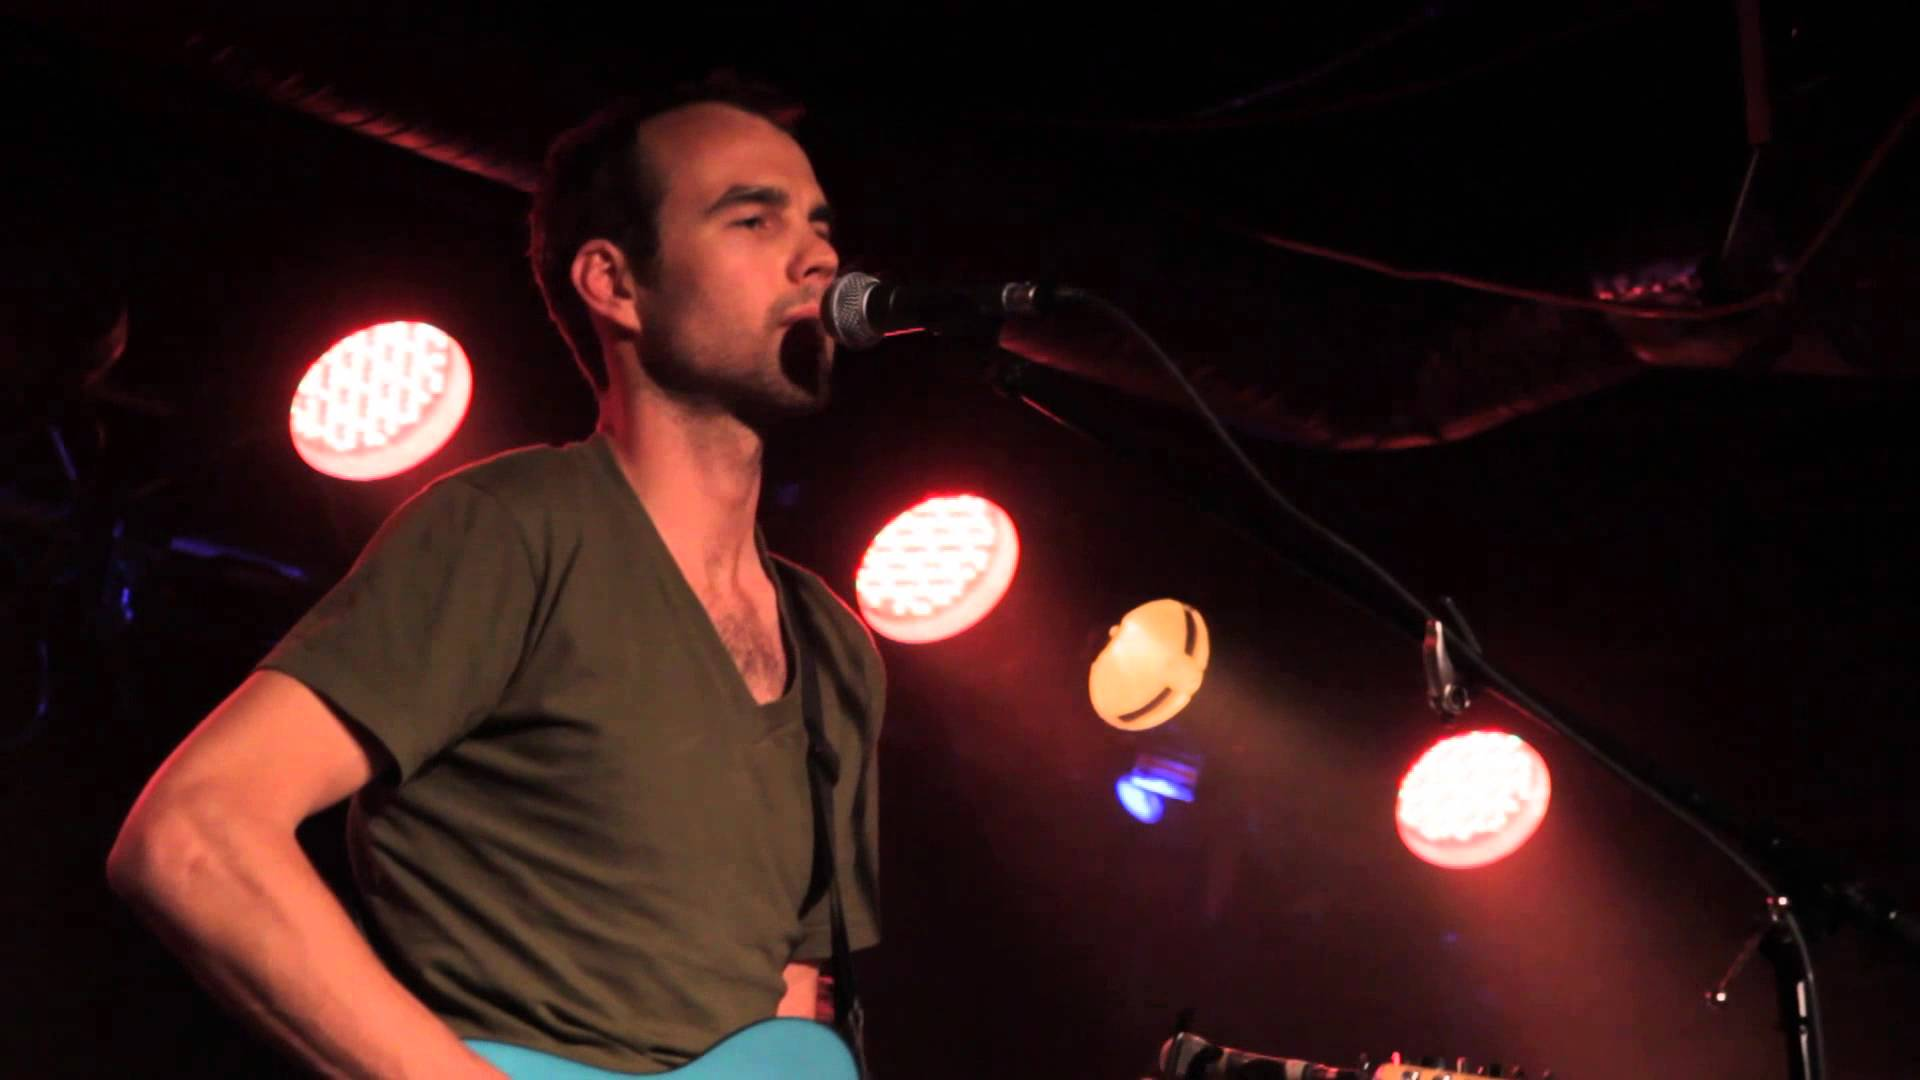 Video Archive- 2013-05-11: The Carlines at Lucky Bar